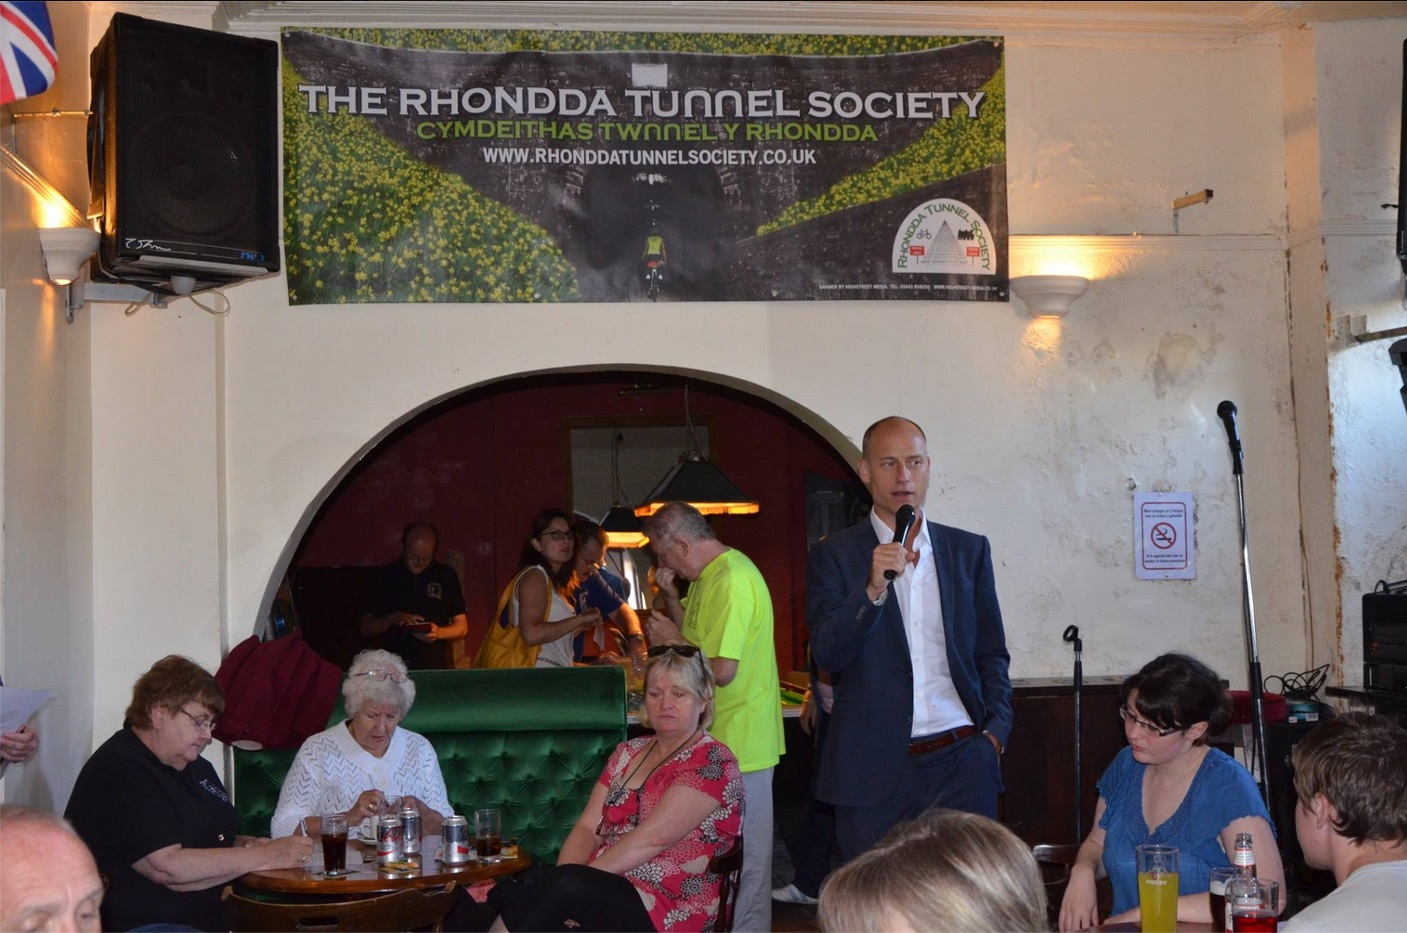 Rhondda_Tunnel_Society_Aug_2015.jpg